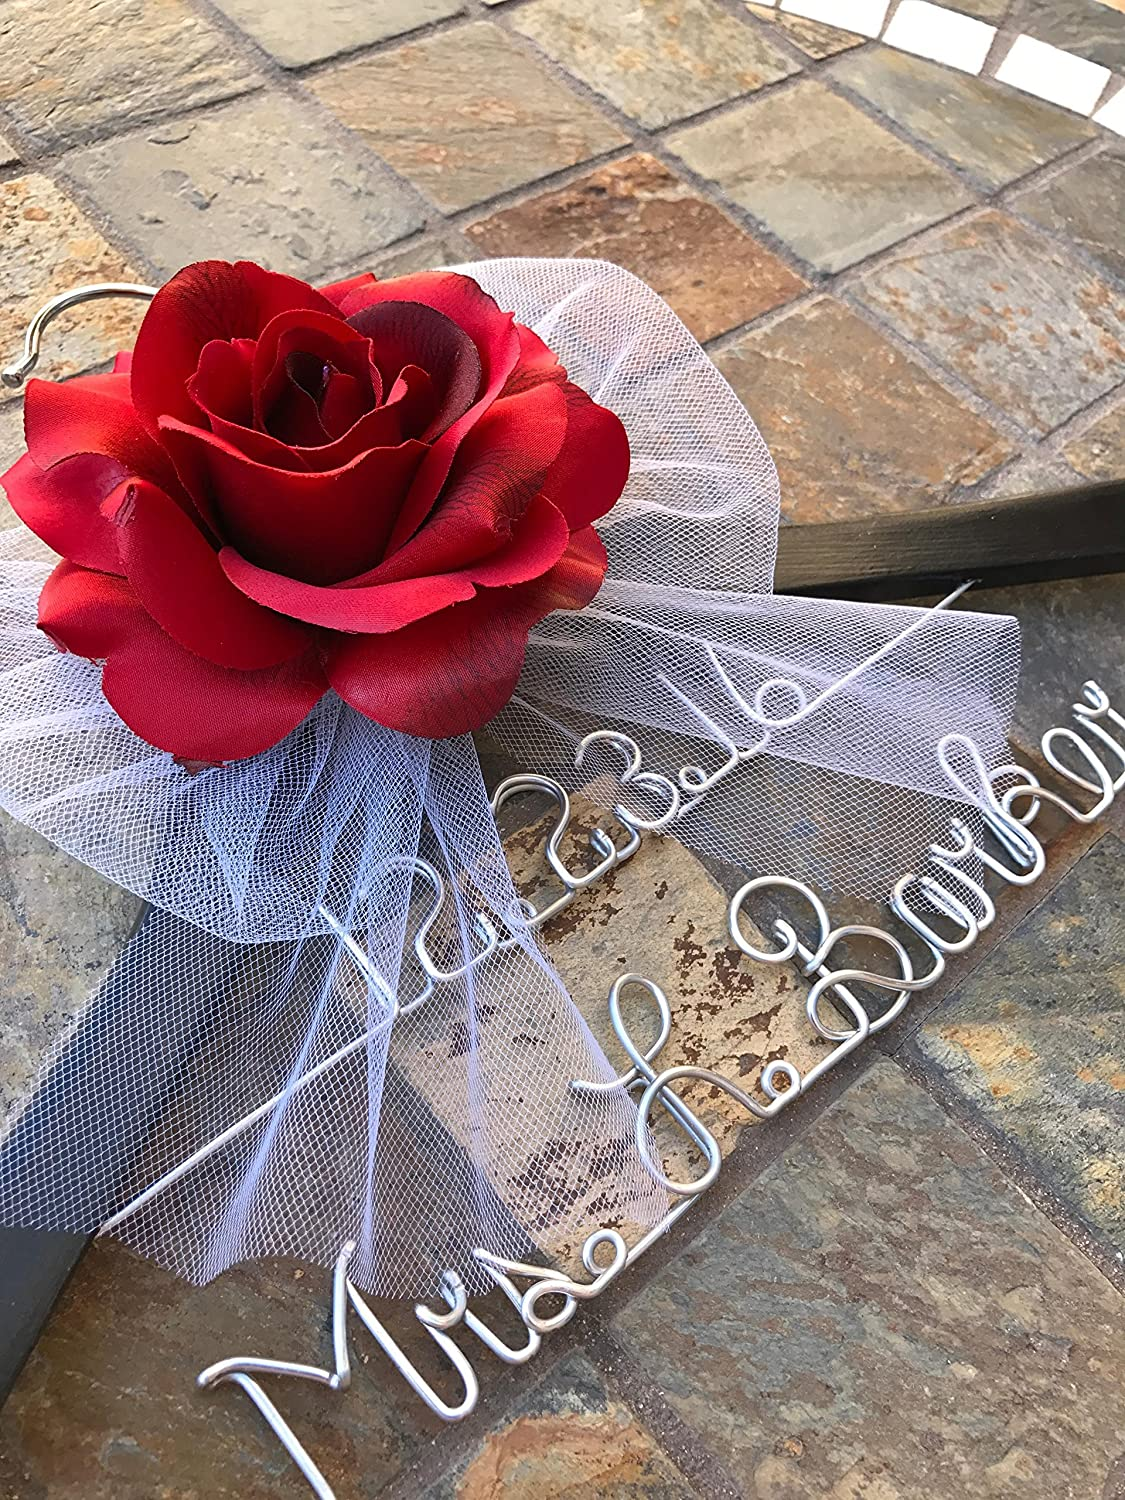 Black Personalized Wedding Hanger with Red Rose - Personalized Wedding Hanger - Bridal Gift - Engagement Gift - Bridesmaid Gift - Bride to Be